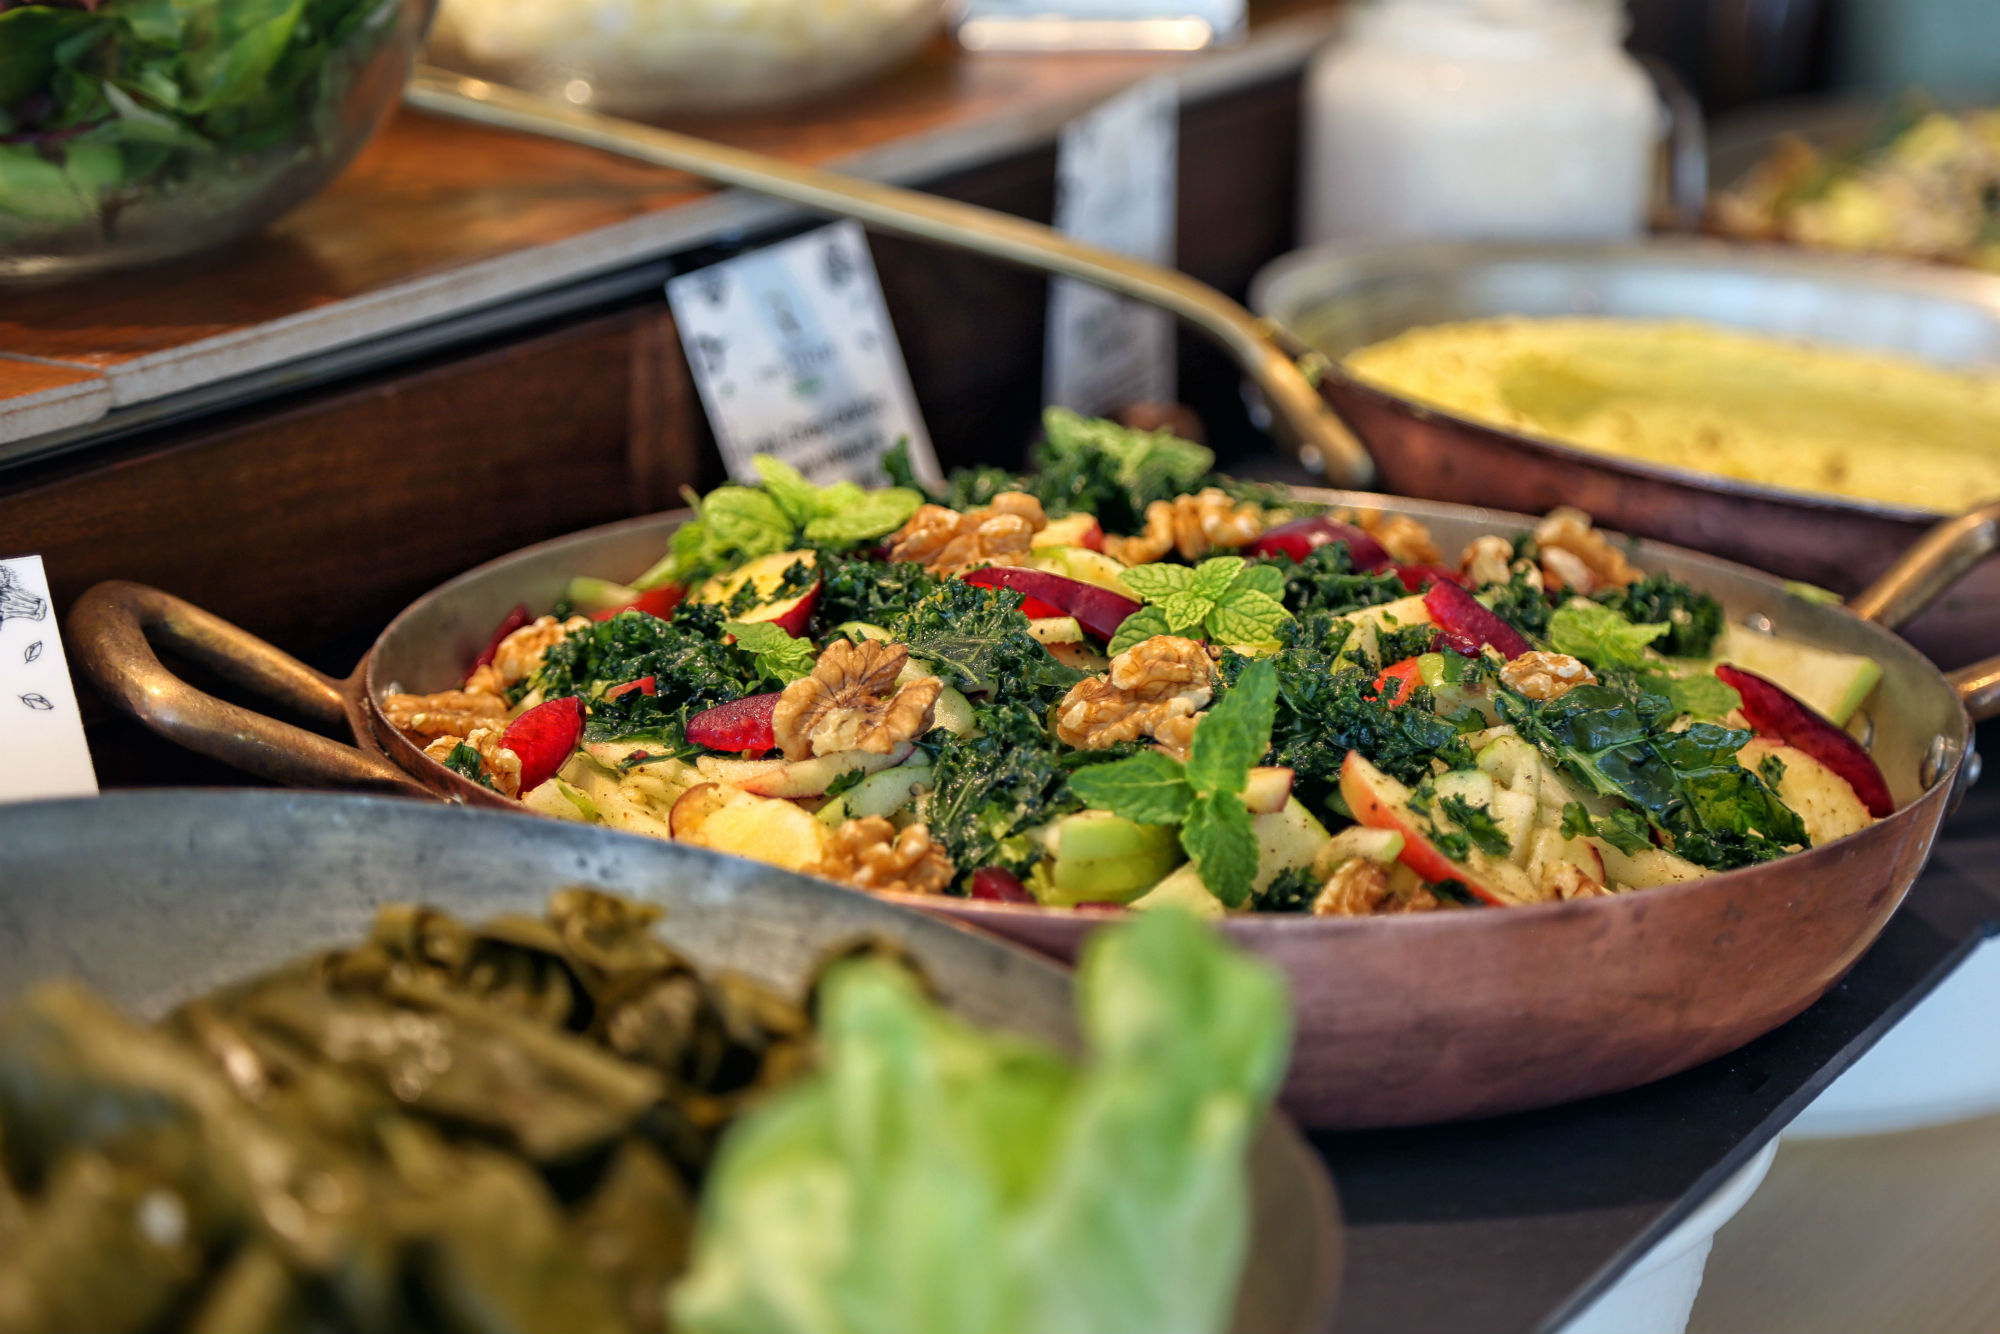 Nutrition is at the heart of The Retreat's wellness approach, too